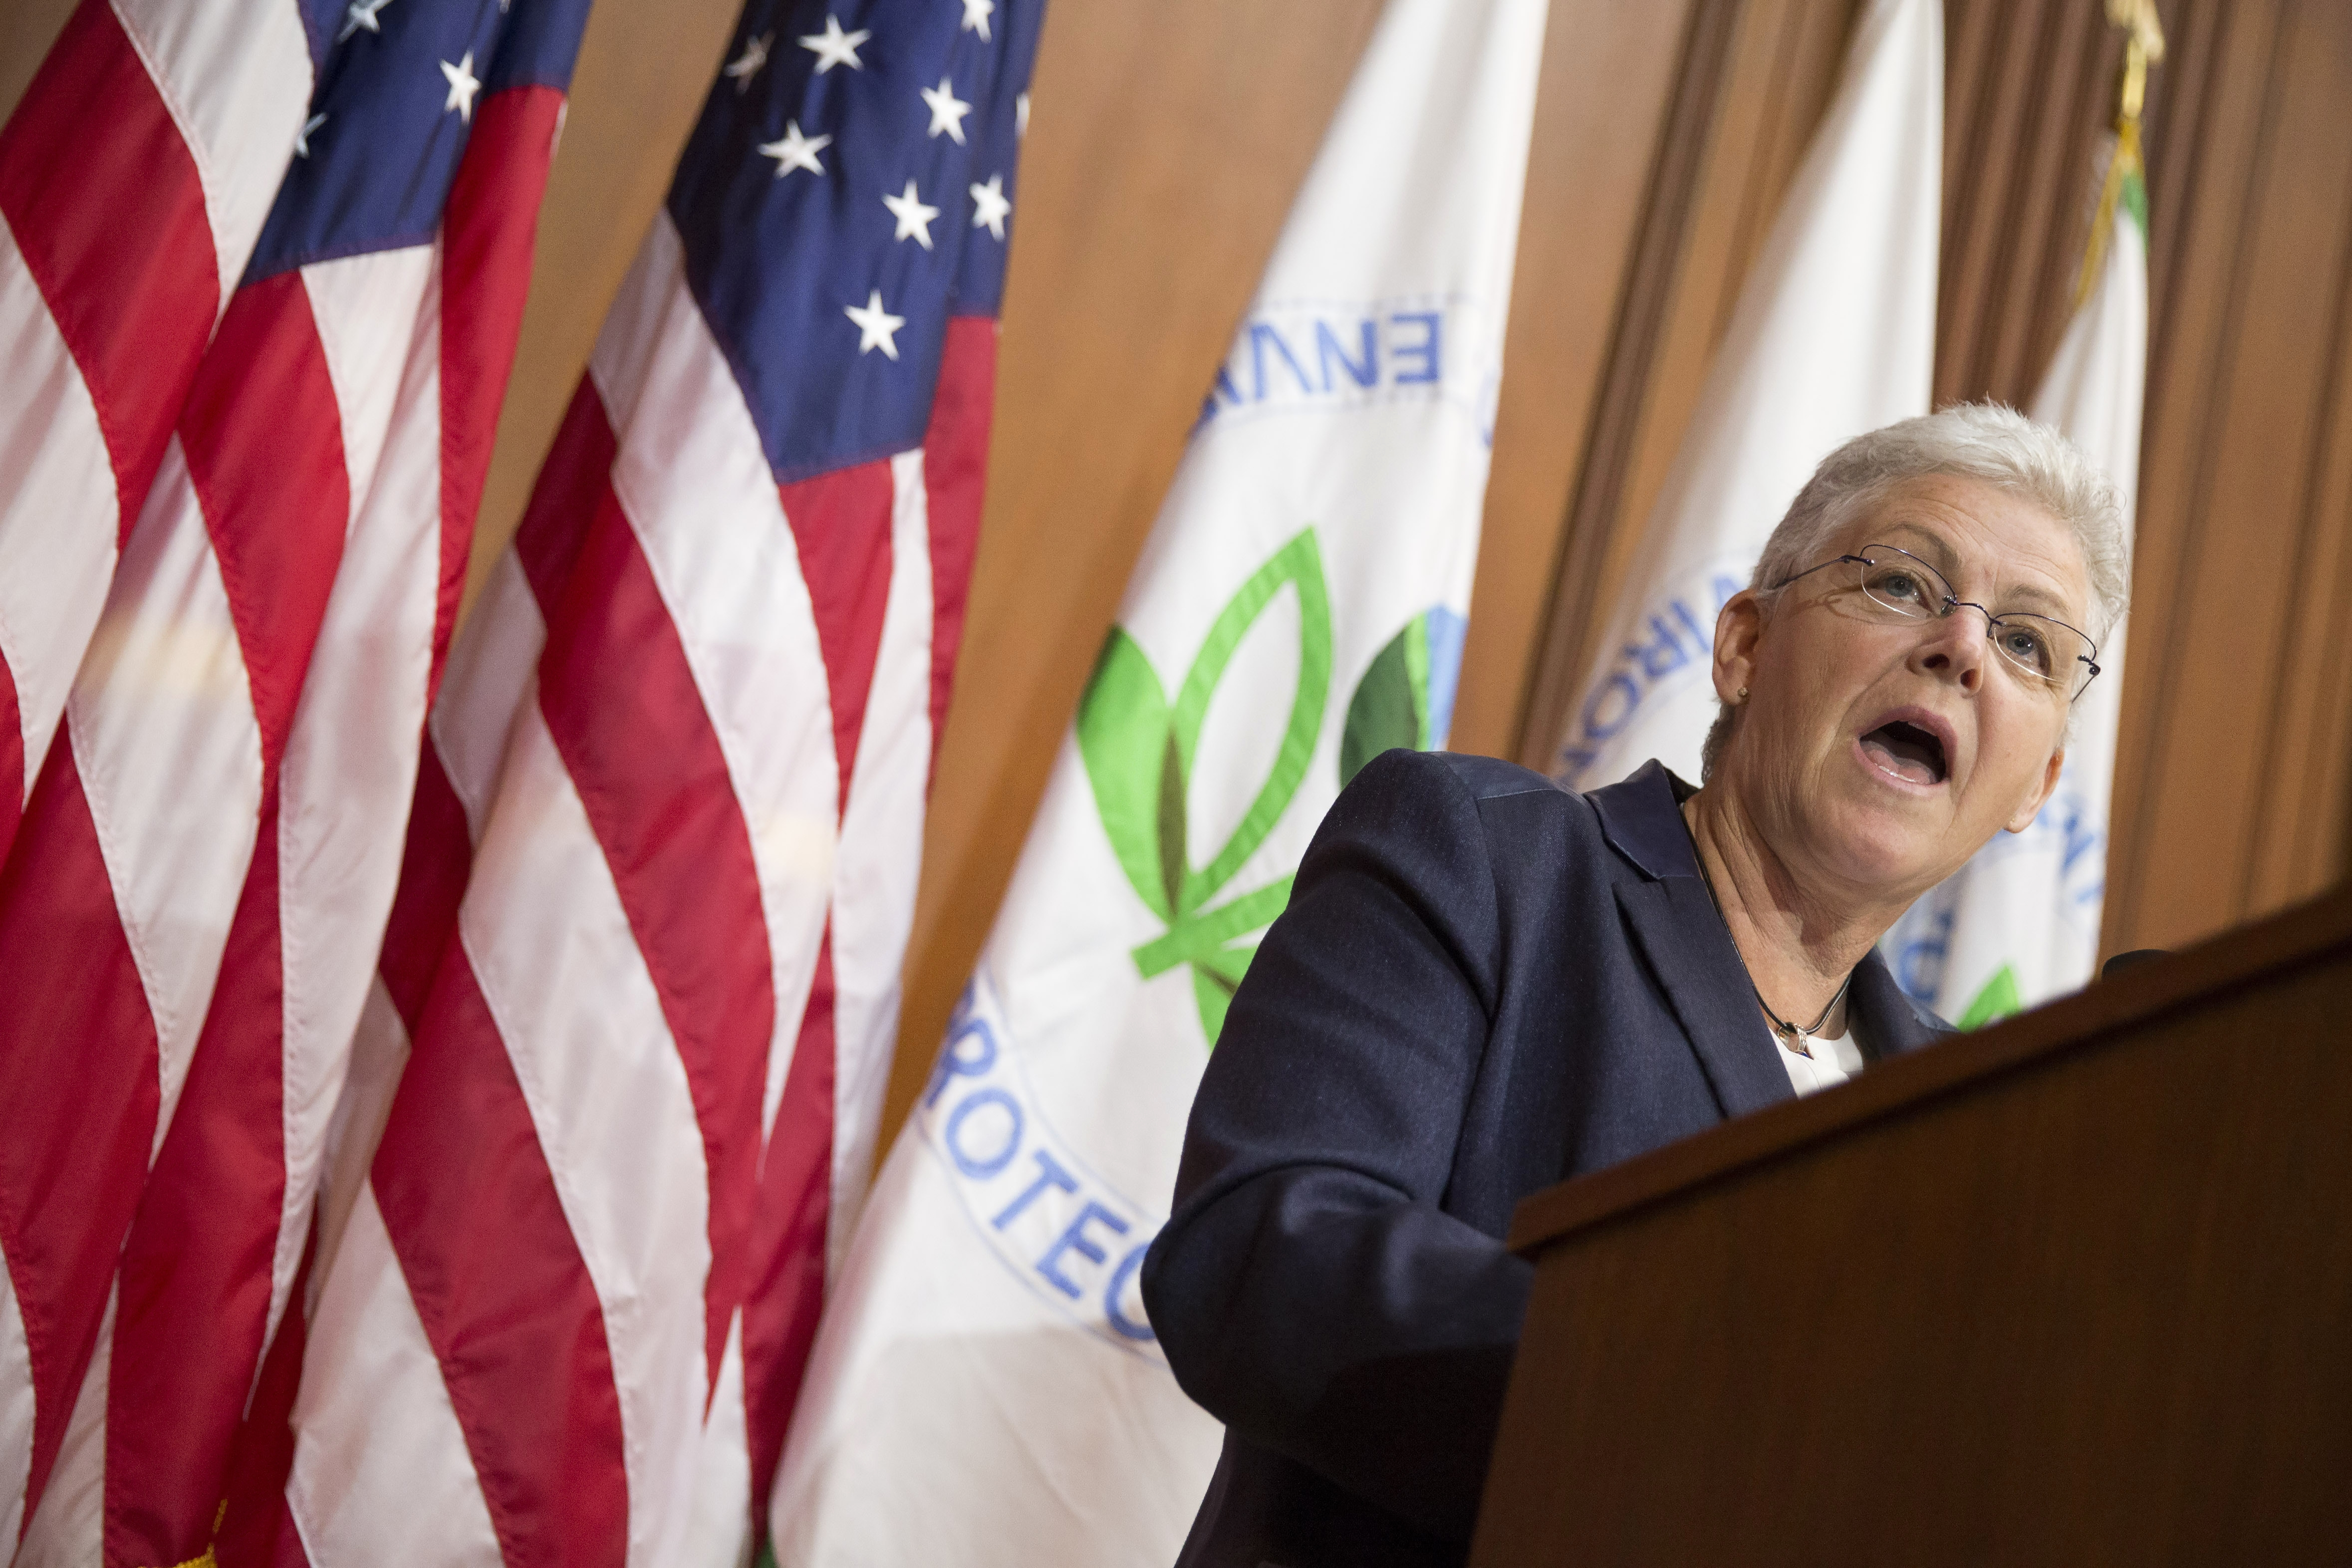 """Environmental Protection Agency Administrator Gina McCarthy speaks during an announcement of a plan to cut carbon dioxide emissions today at EPA headquarters in Washington, D.C. """"Climate change, fueled by carbon pollution, supercharges risks to our health, our economy and our way of life,"""" McCarthy said during the announcement."""